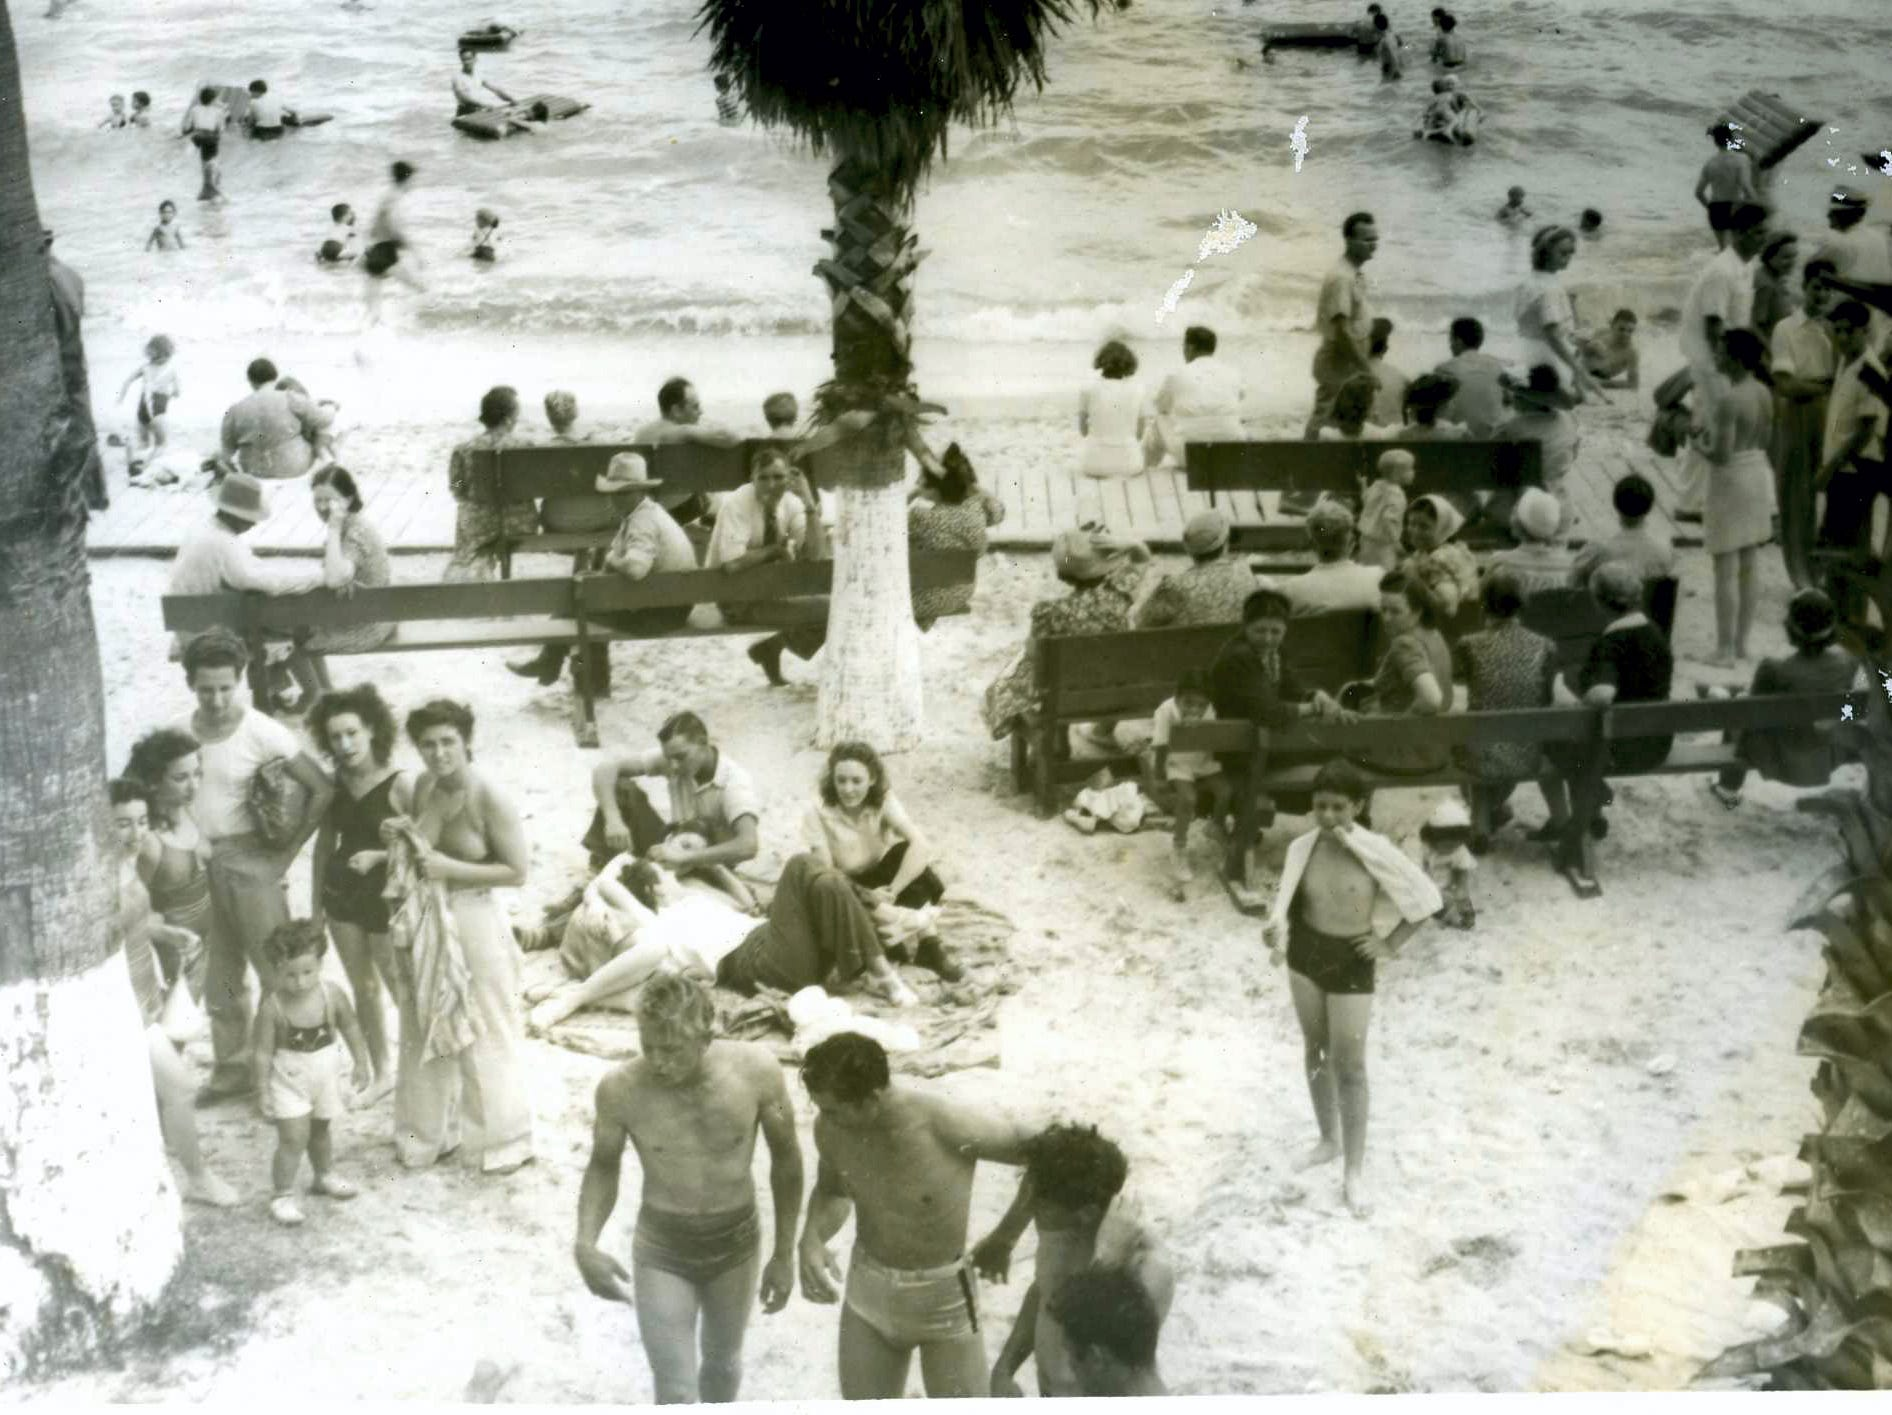 Crowds on Corpus Christi's North Beach in 1943.